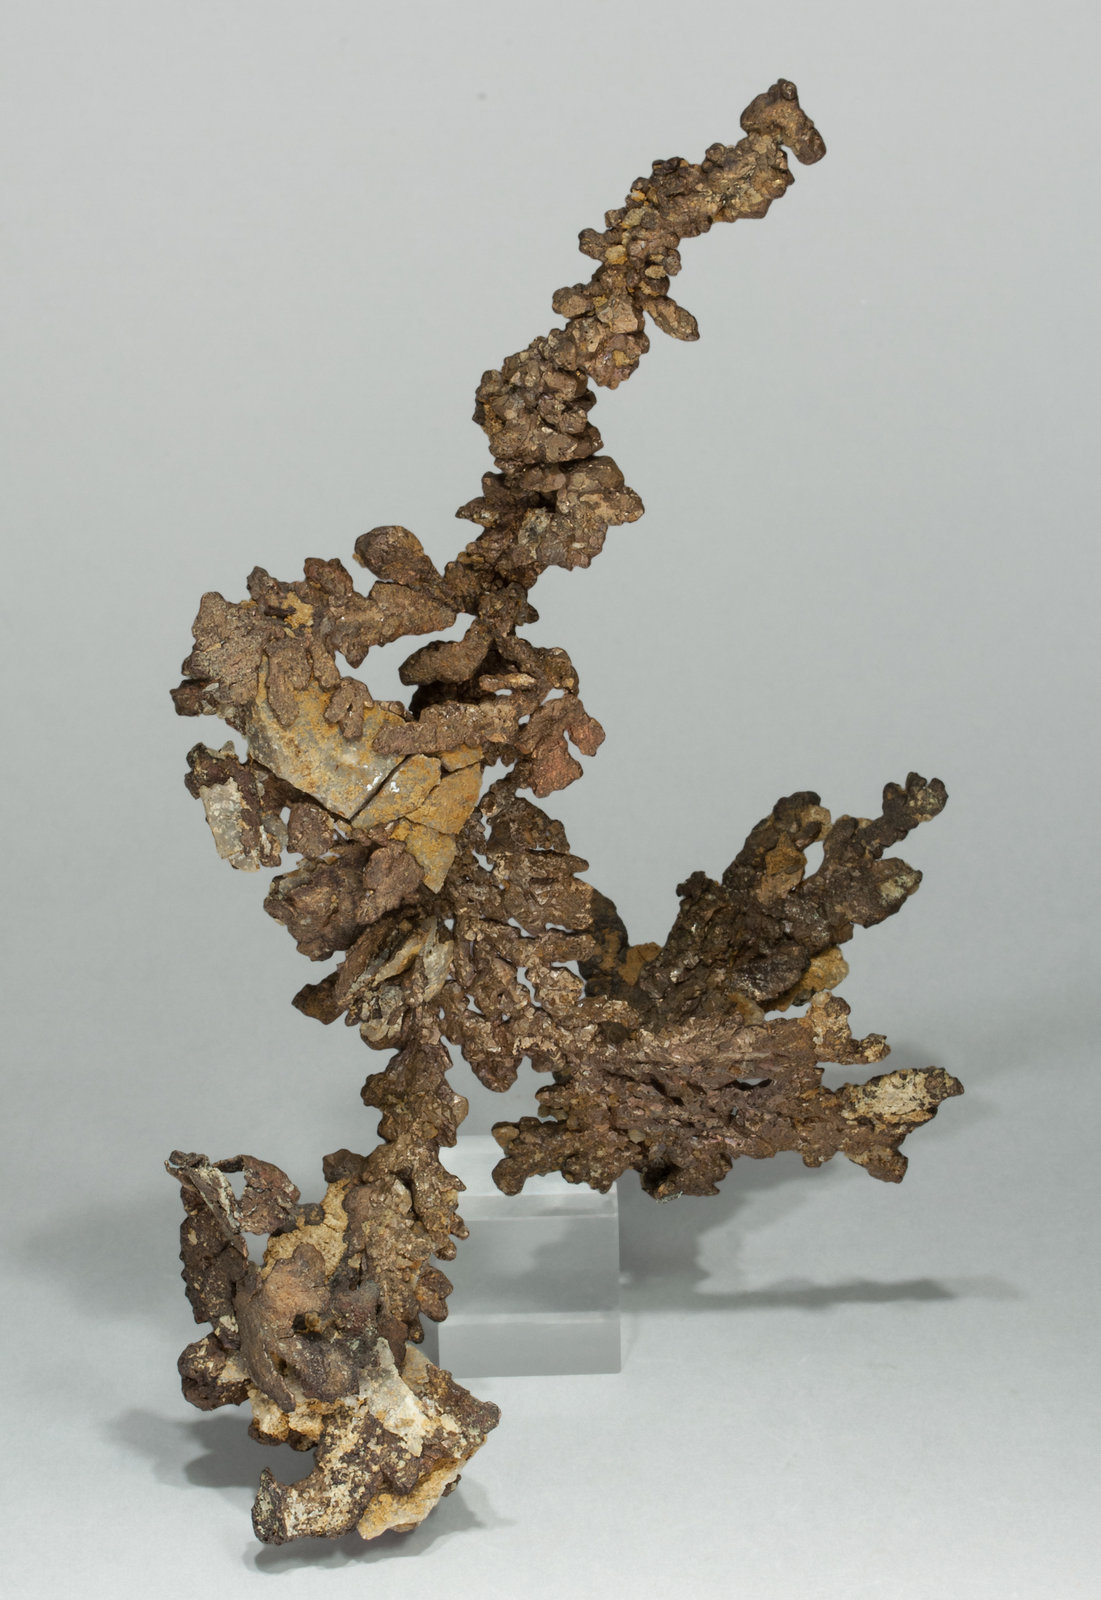 specimens/s_imagesY9/Copper-VA47Y9r.jpg